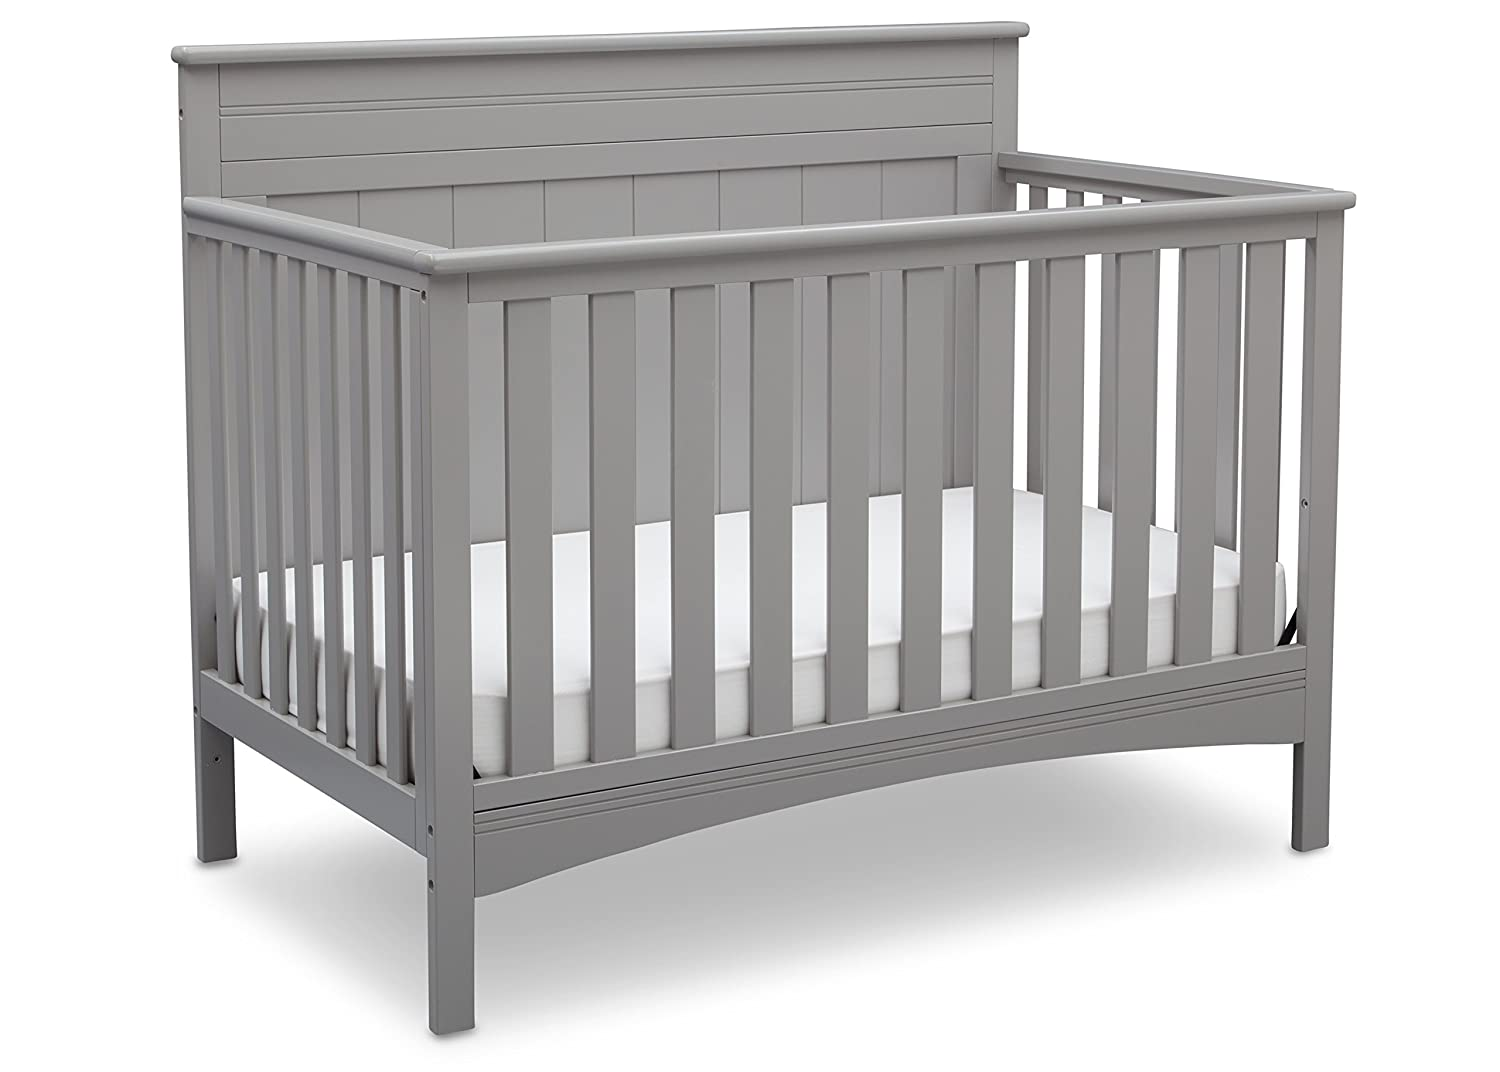 Baby Crib Mattress Critiques Amazon.com : Delta Children Fancy 4-in-1 Convertible Baby Crib, Grey : Baby